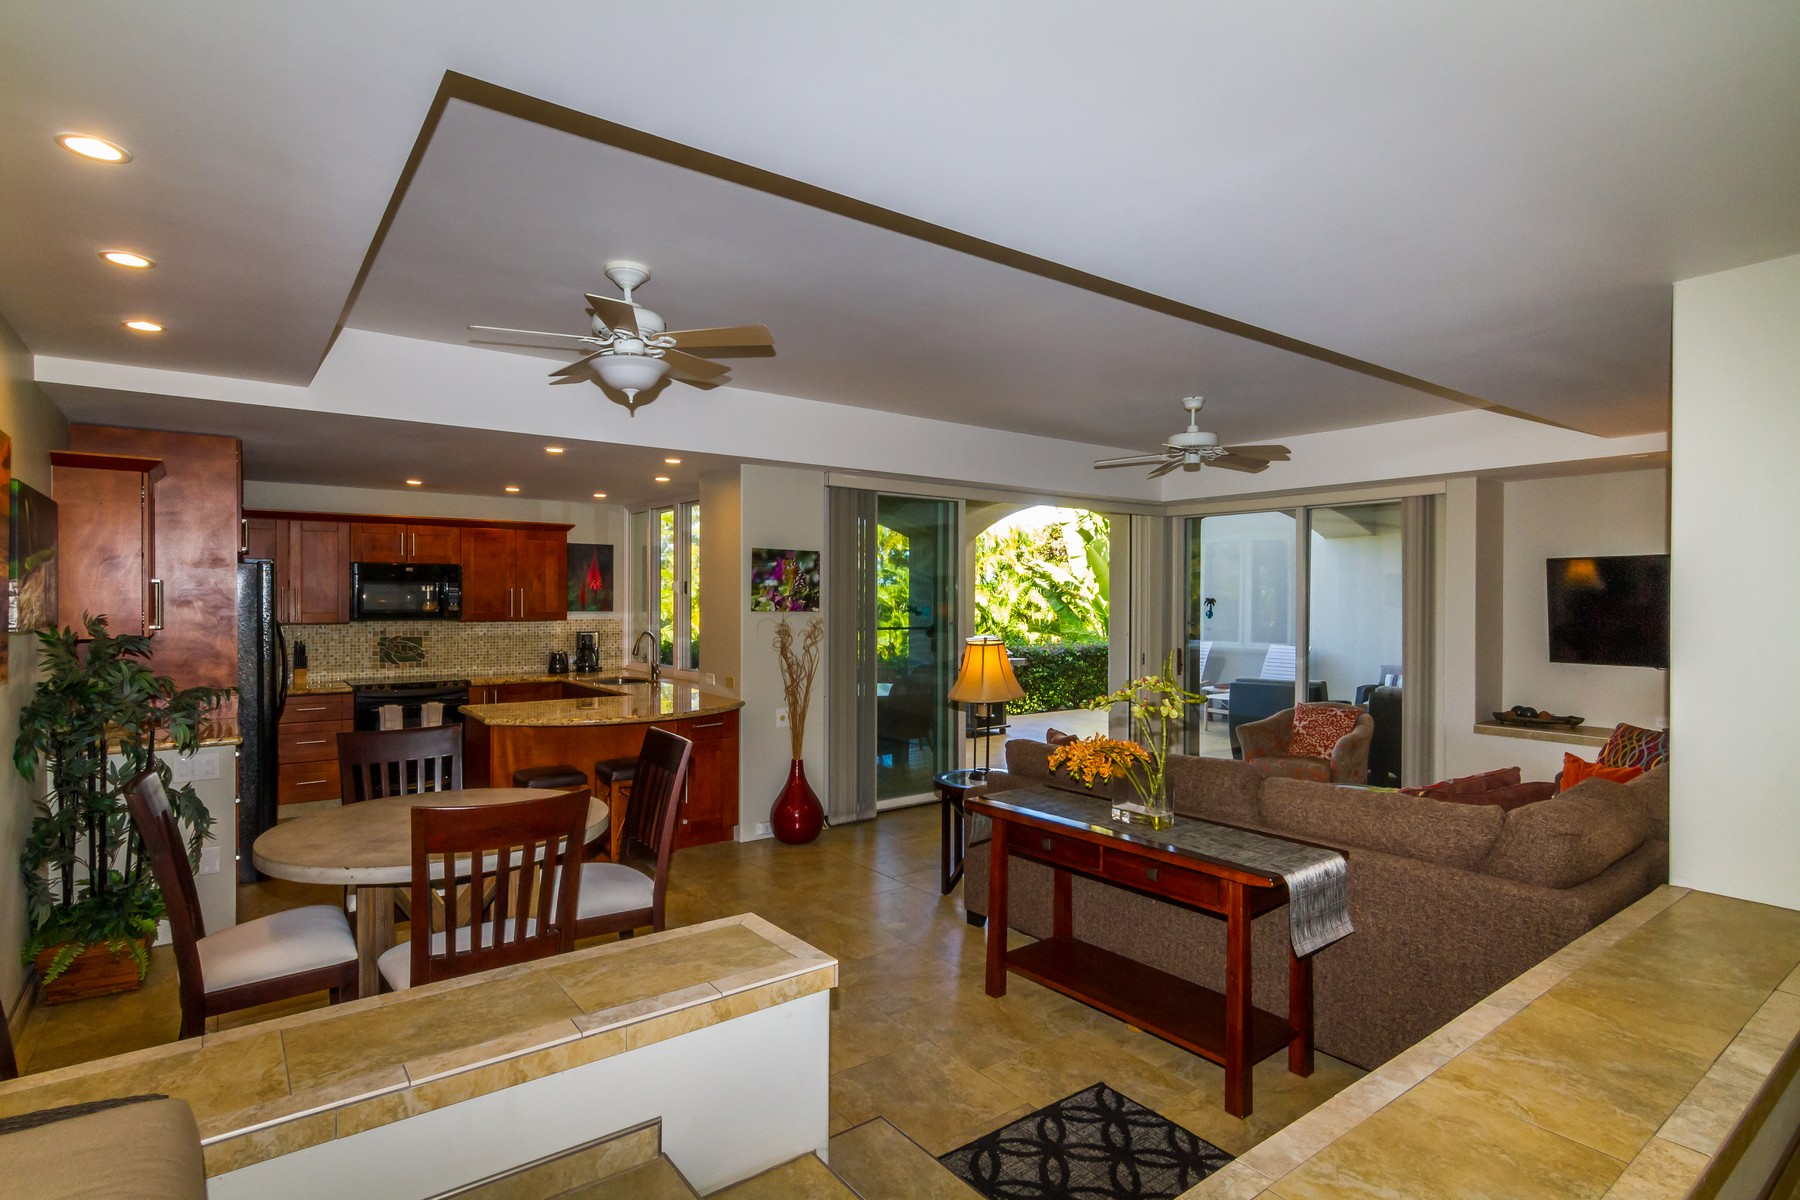 共管式独立产权公寓 为 销售 在 Fully Renovated, Furnished 1 Bed Condo With Short Walk To Beach 3200 Wailea Alanui Drive, Palms at Wailea 2203 威雷亚, 夏威夷 96753 美国